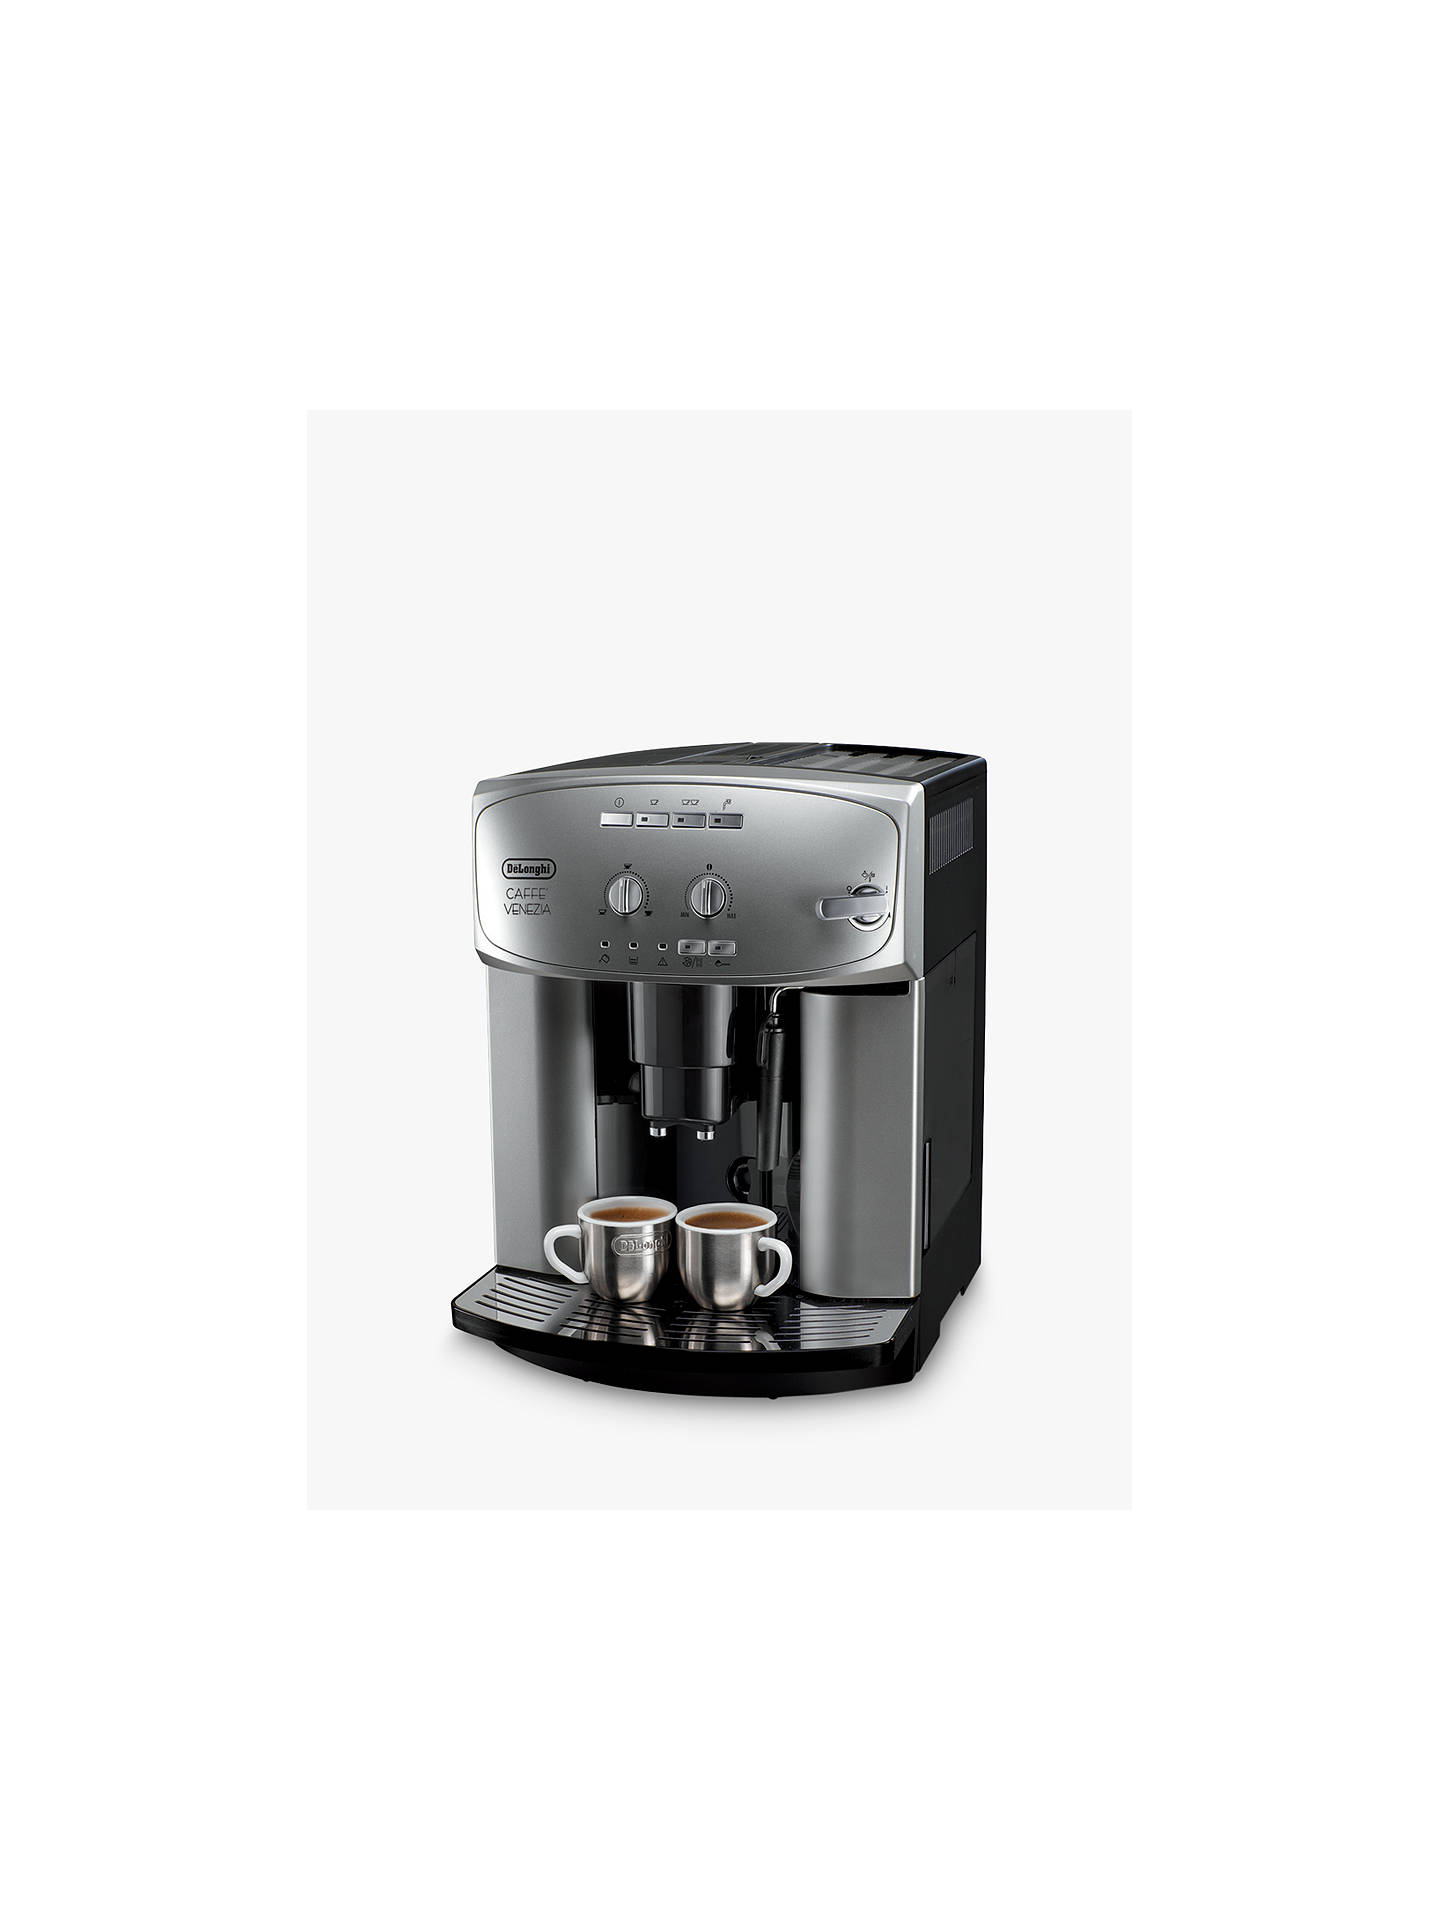 Buy De'Longhi ESAM2200 Venezia Bean-to-Cup Coffee Machine, Silver Online at johnlewis.com